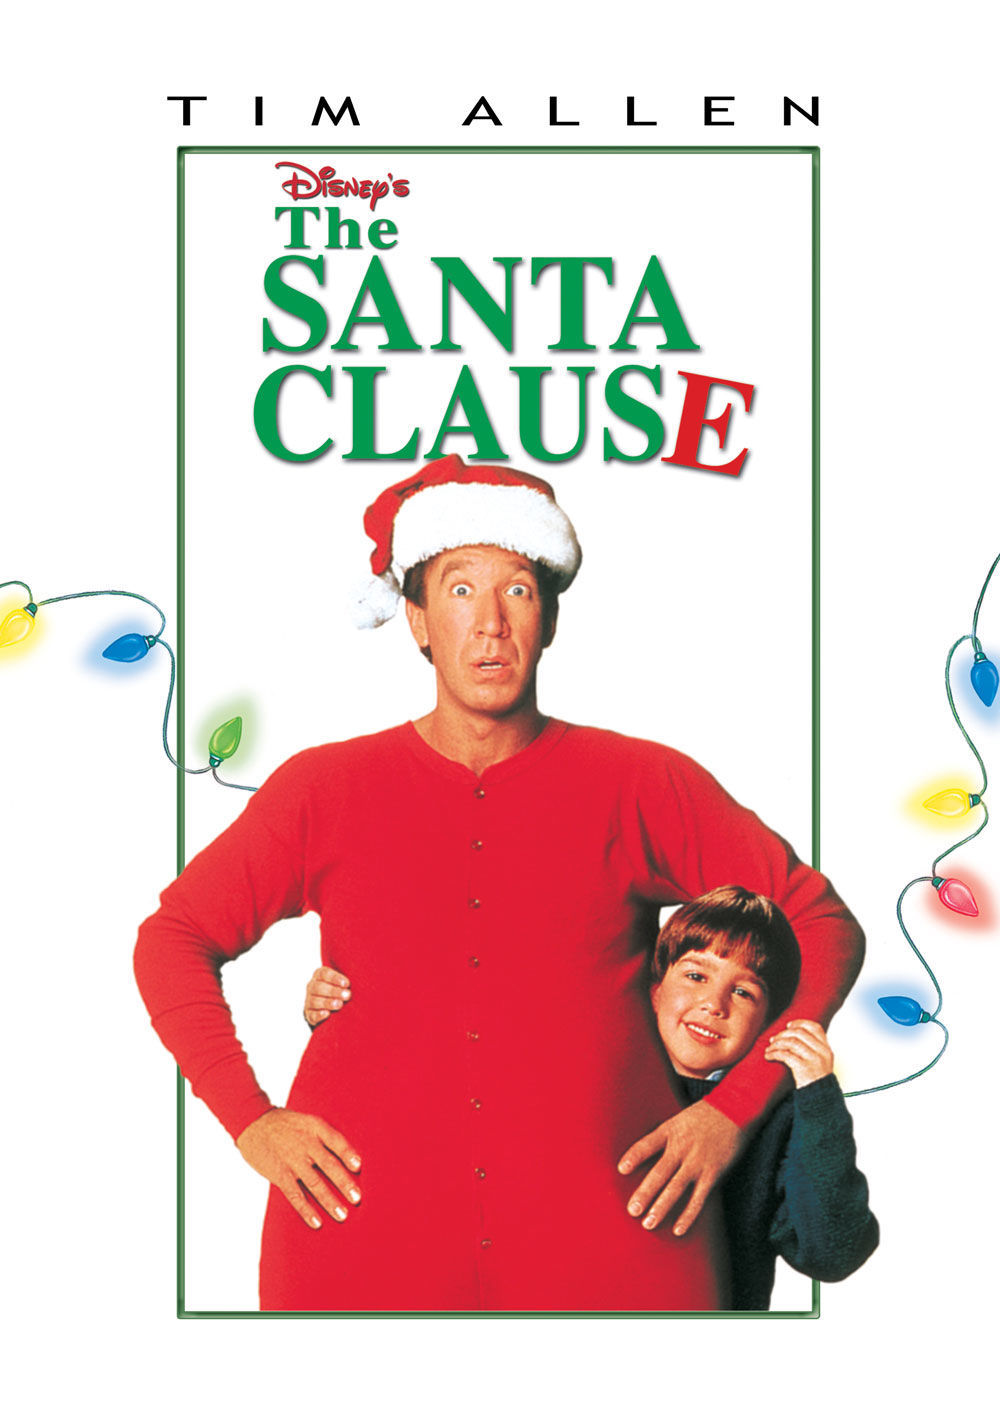 The Santa Clause, Saturday 22 Dec, 5pm